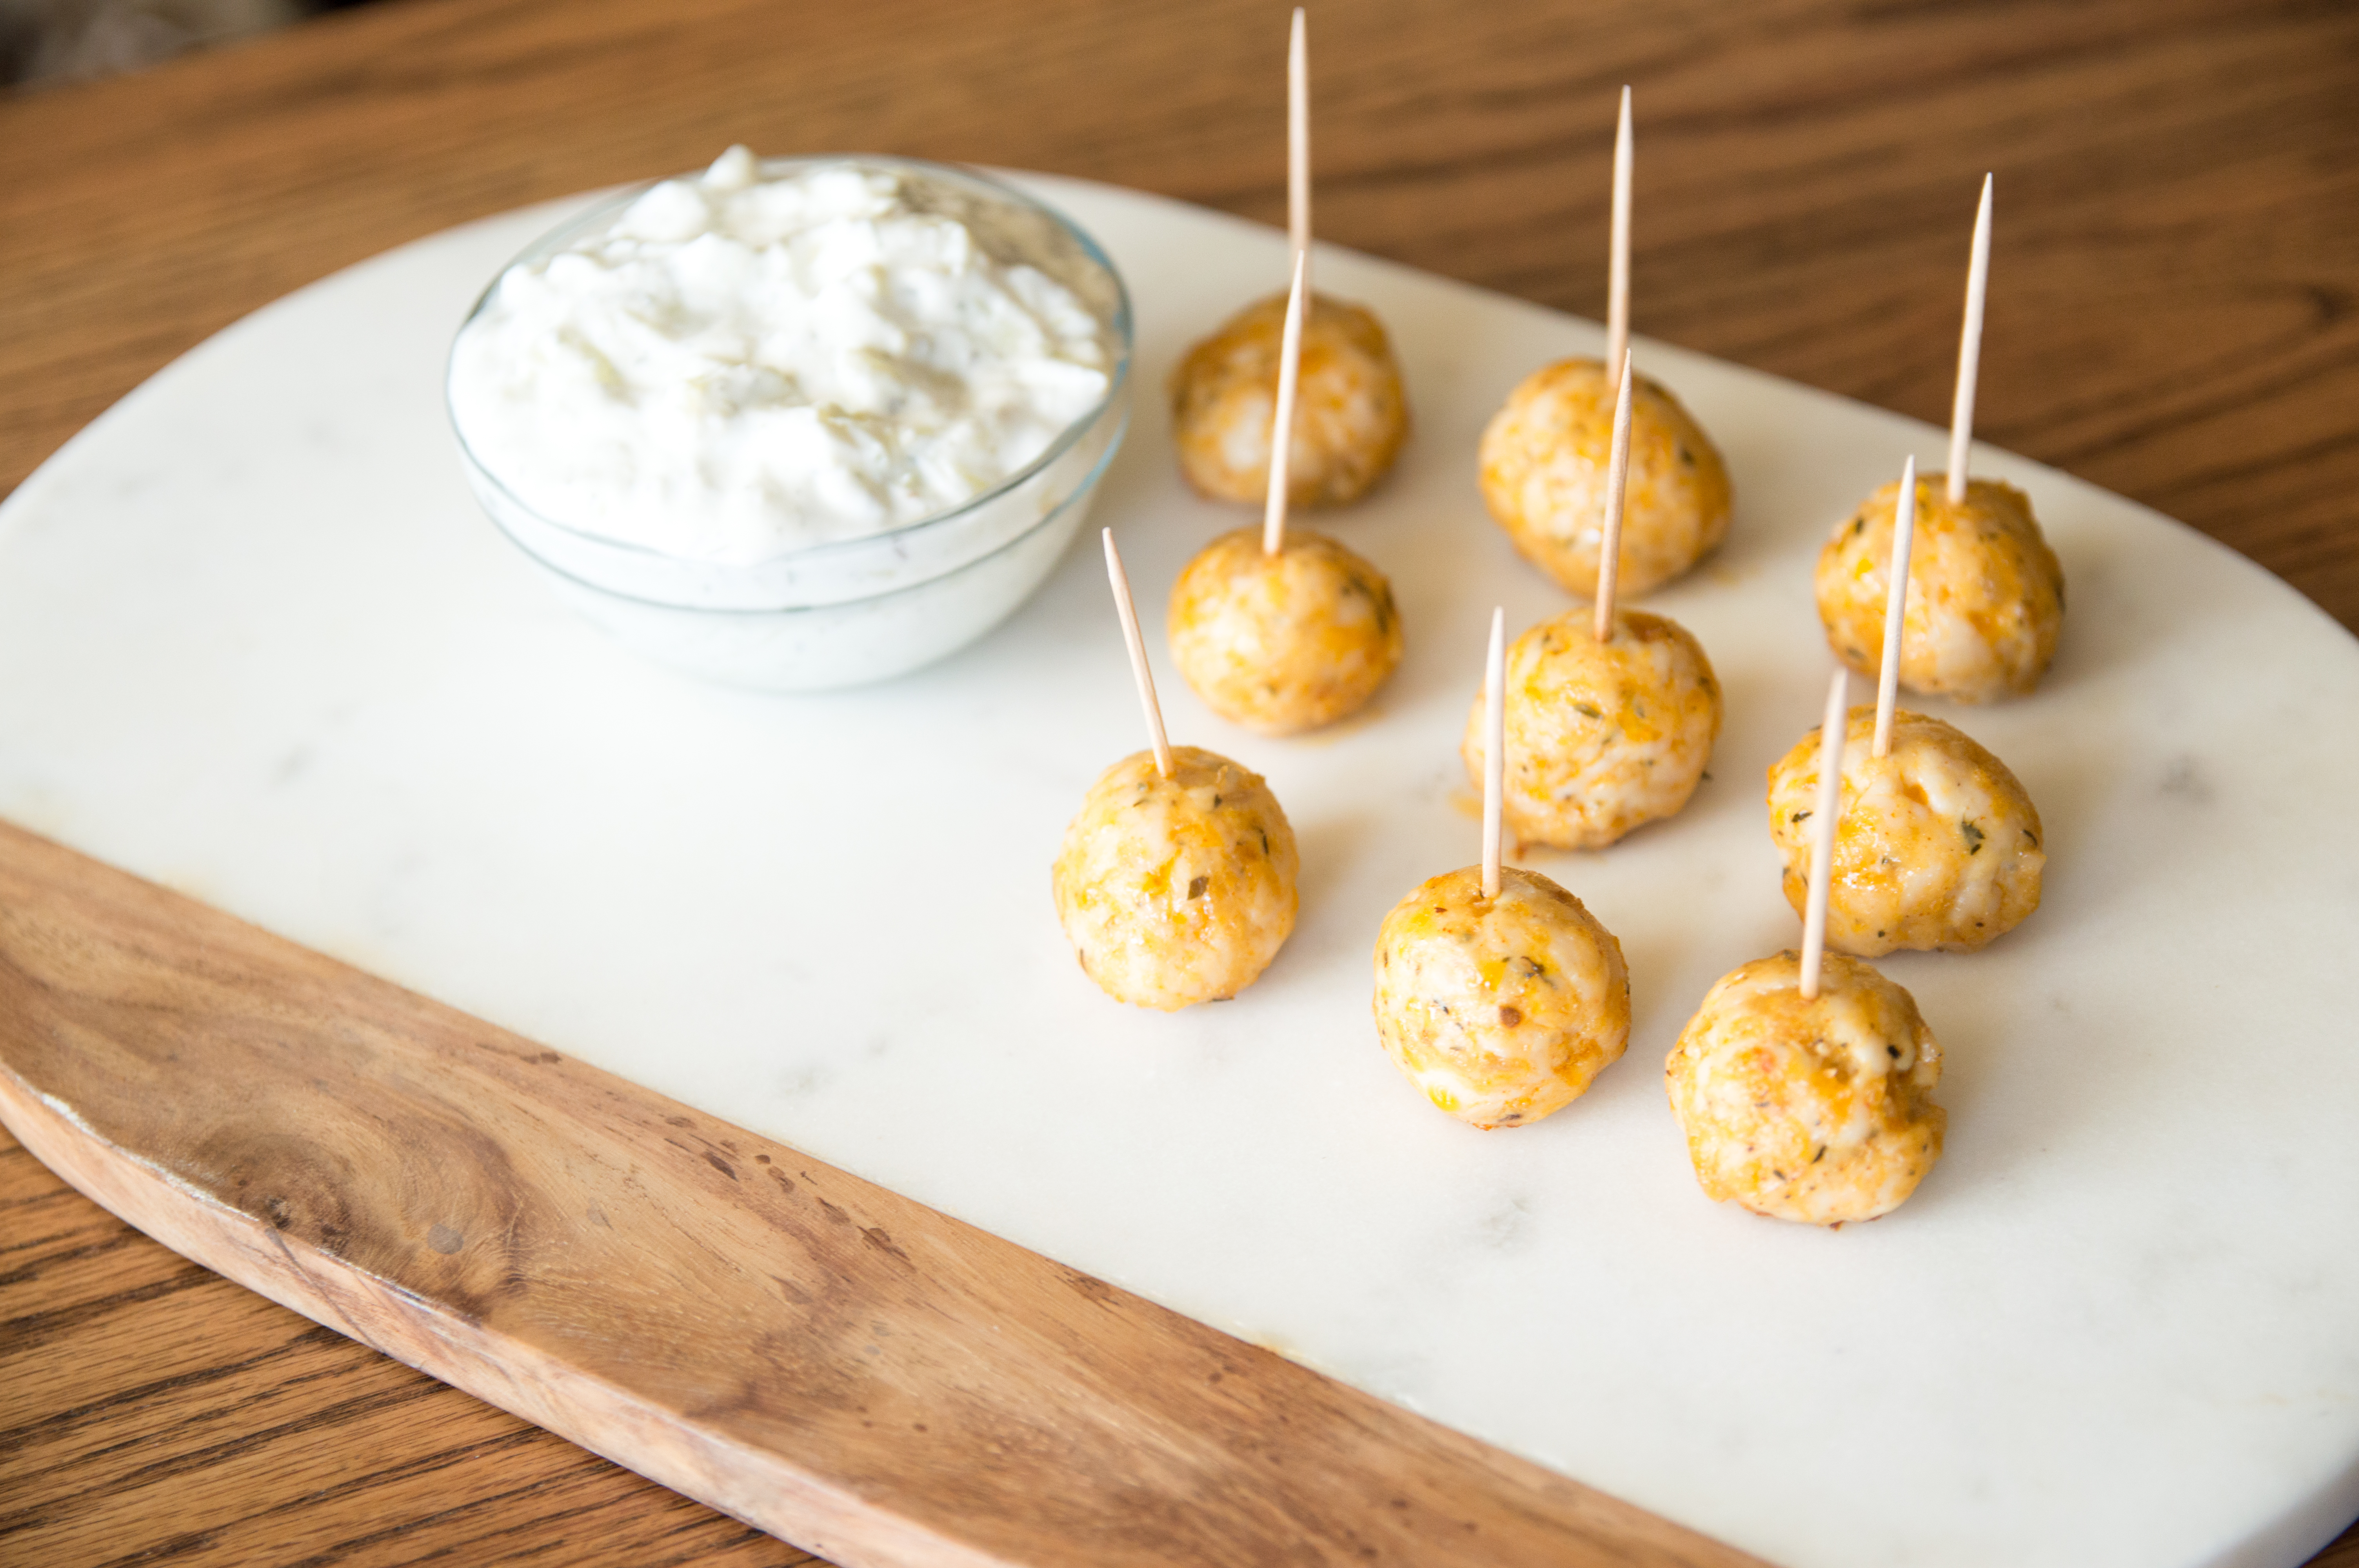 Party Size Turkey Meatballs with Tzatziki